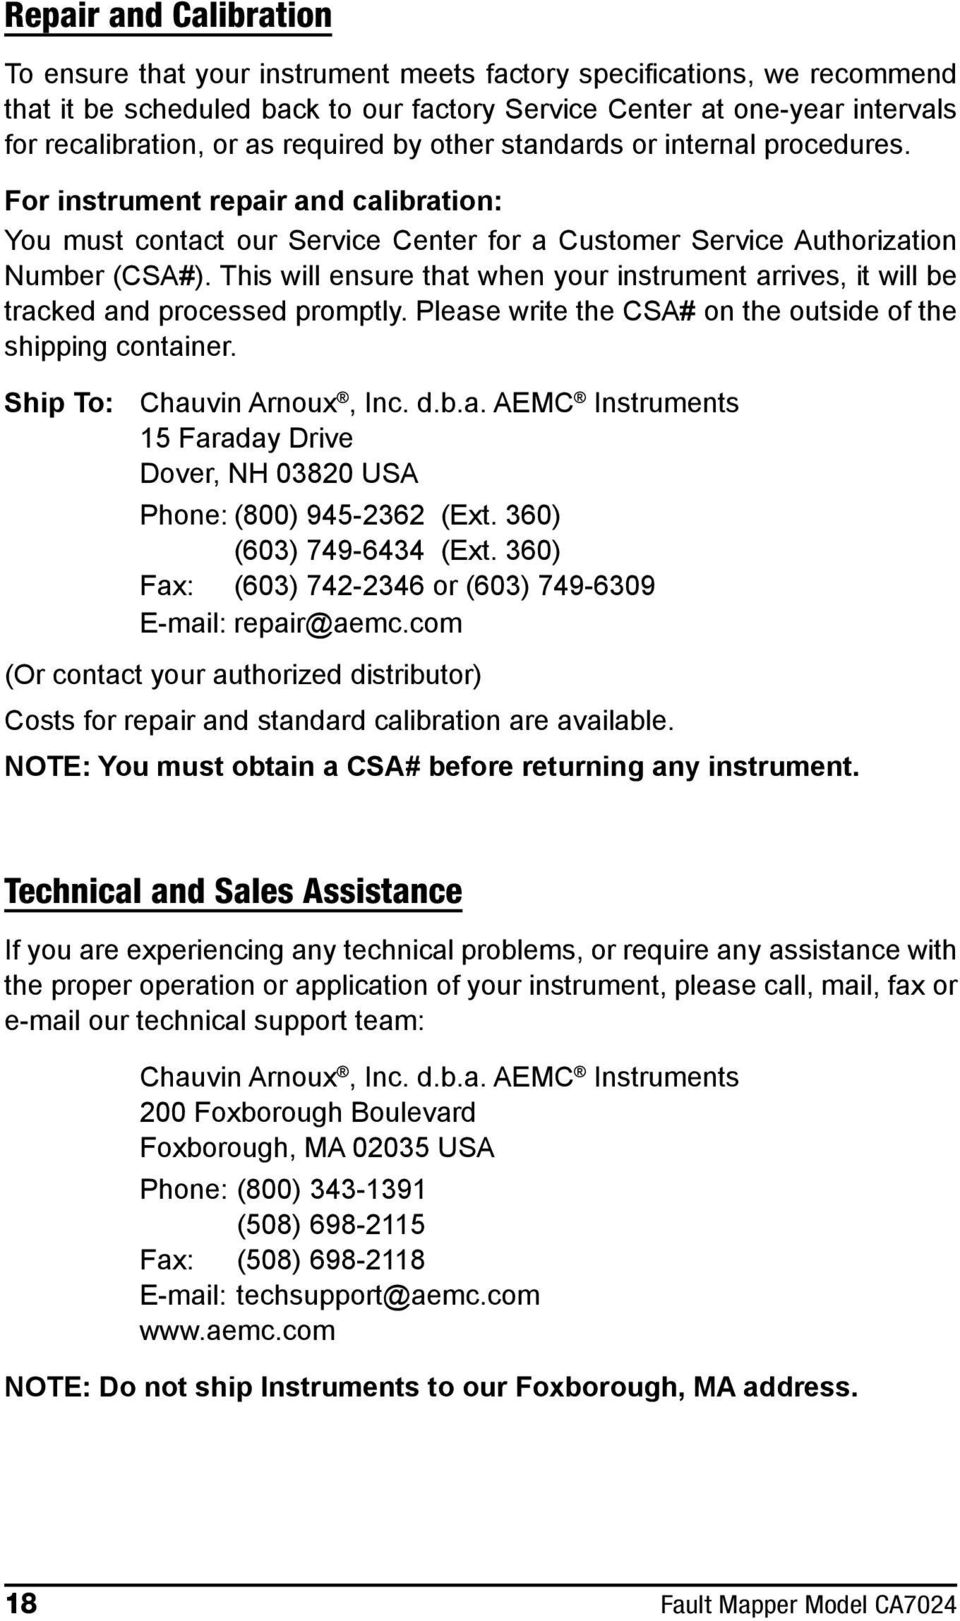 This will ensure that when your instrument arrives, it will be tracked and processed promptly. Please write the CSA# on the outside of the shipping container. Ship To: Chauvin Arnoux, Inc. d.b.a. AEMC Instruments 15 Faraday Drive Dover, NH 03820 USA Phone: (800) 945-2362 (Ext.